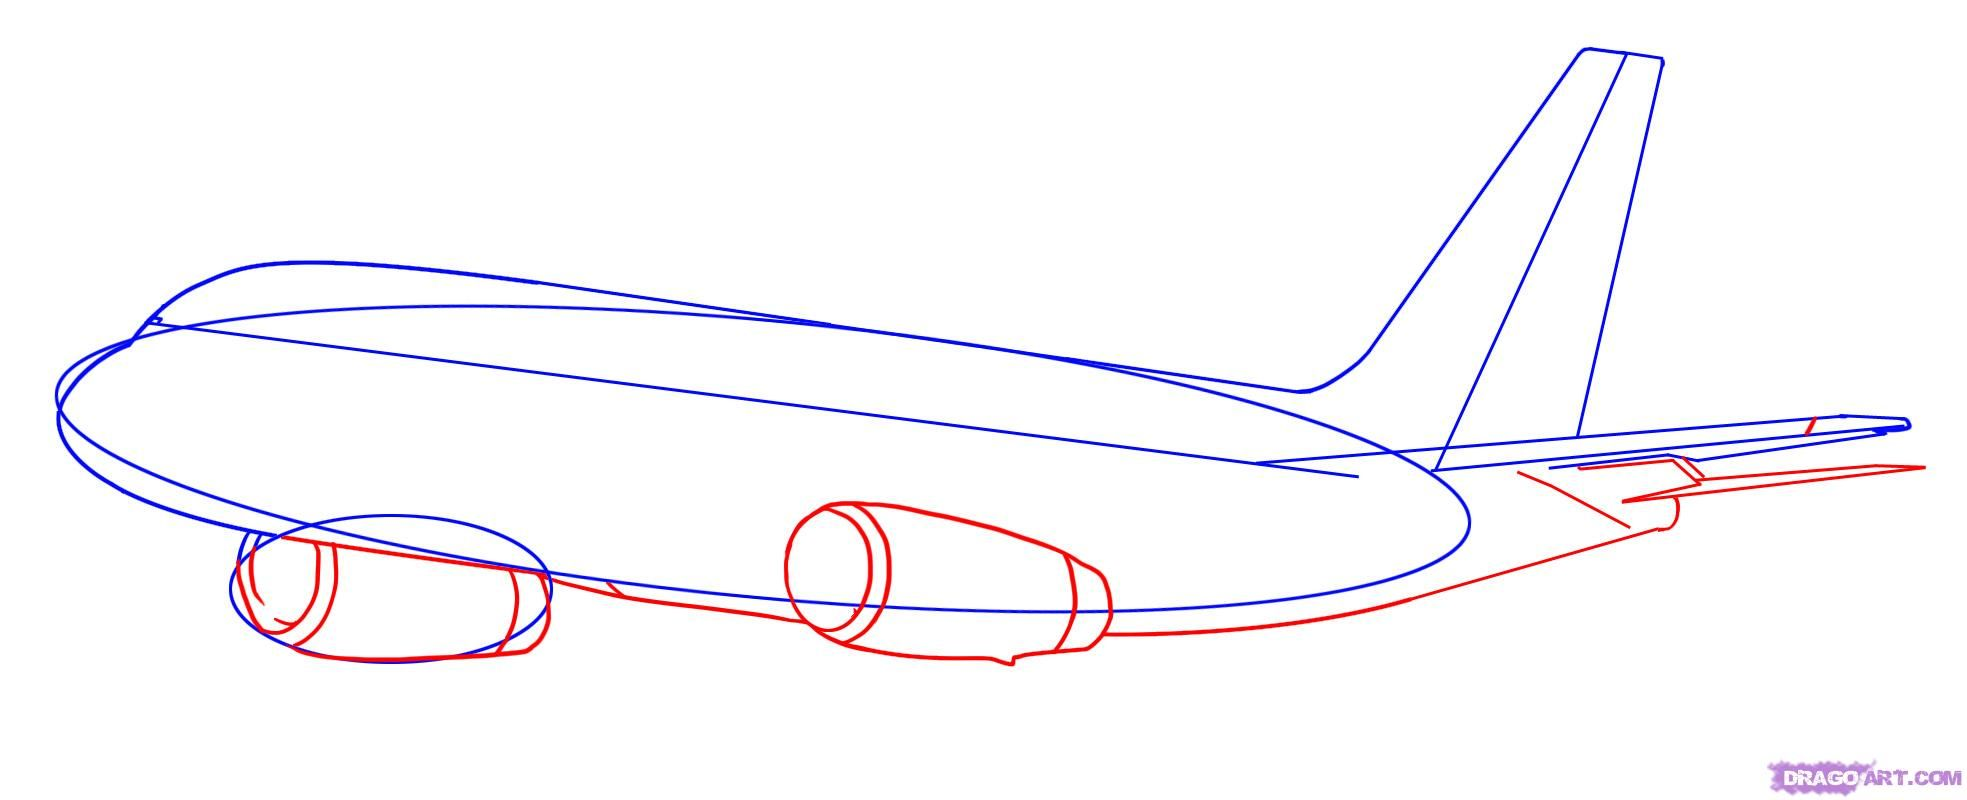 How to draw the Submarine with a pencil poetapn 4